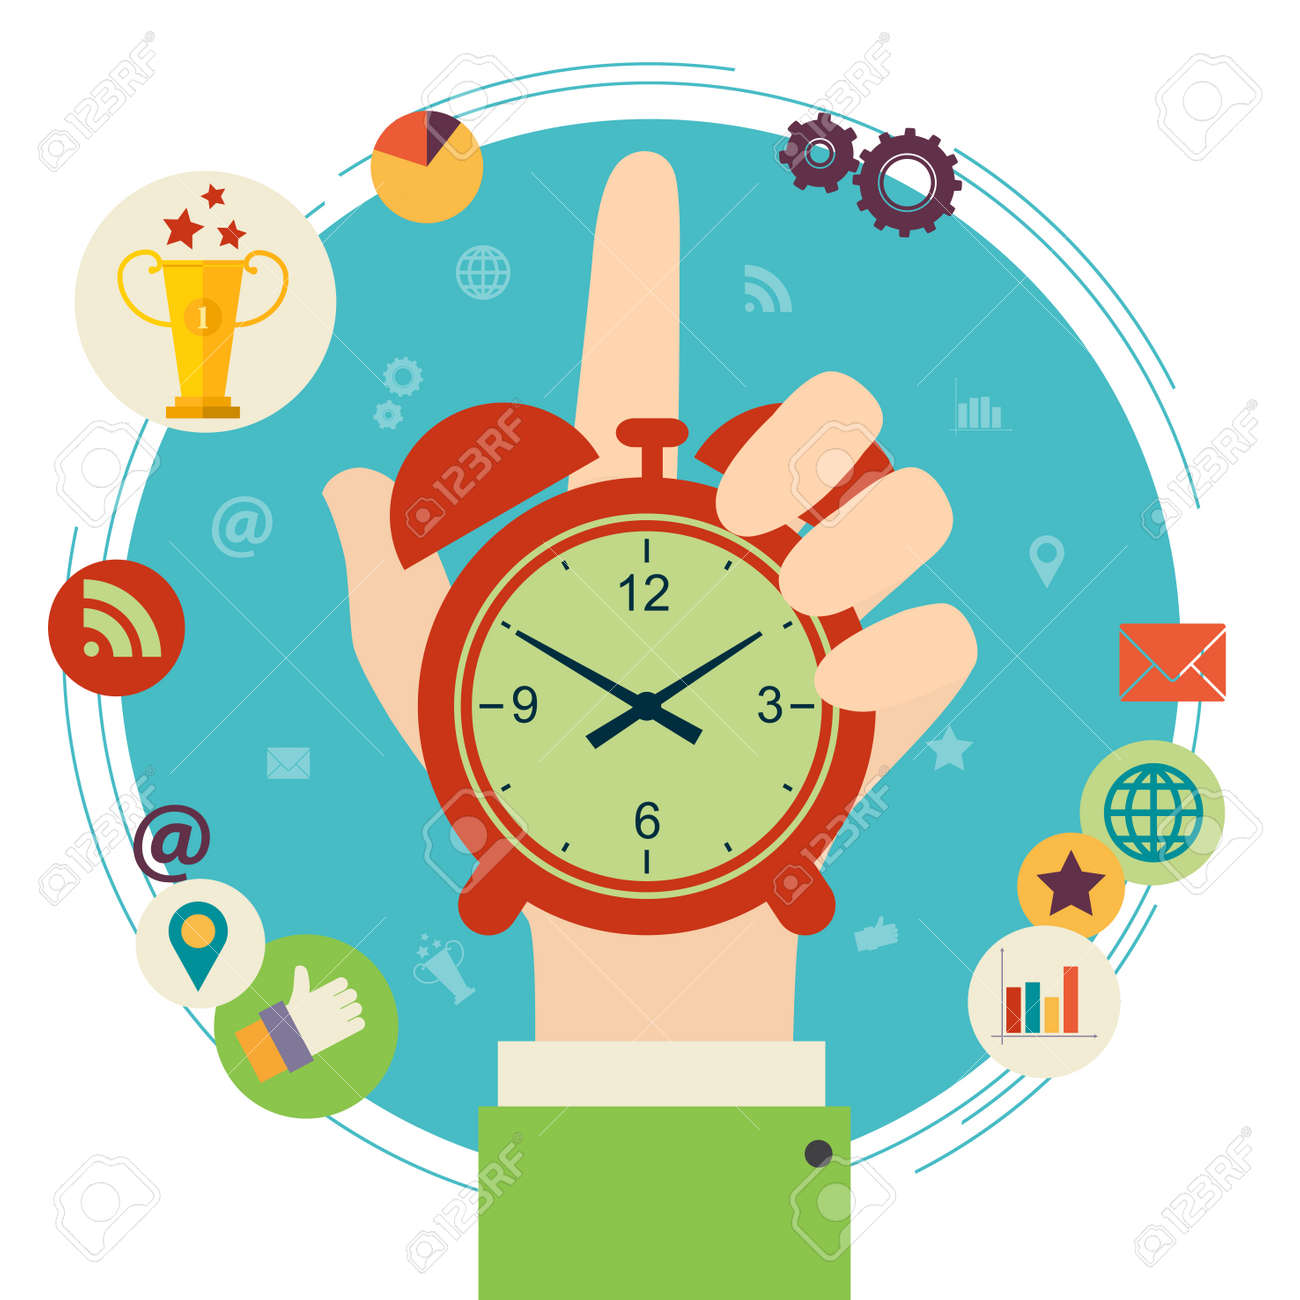 34 147 time management cliparts stock vector and royalty free time rh 123rf com time management clipart images Change Management Clip Art